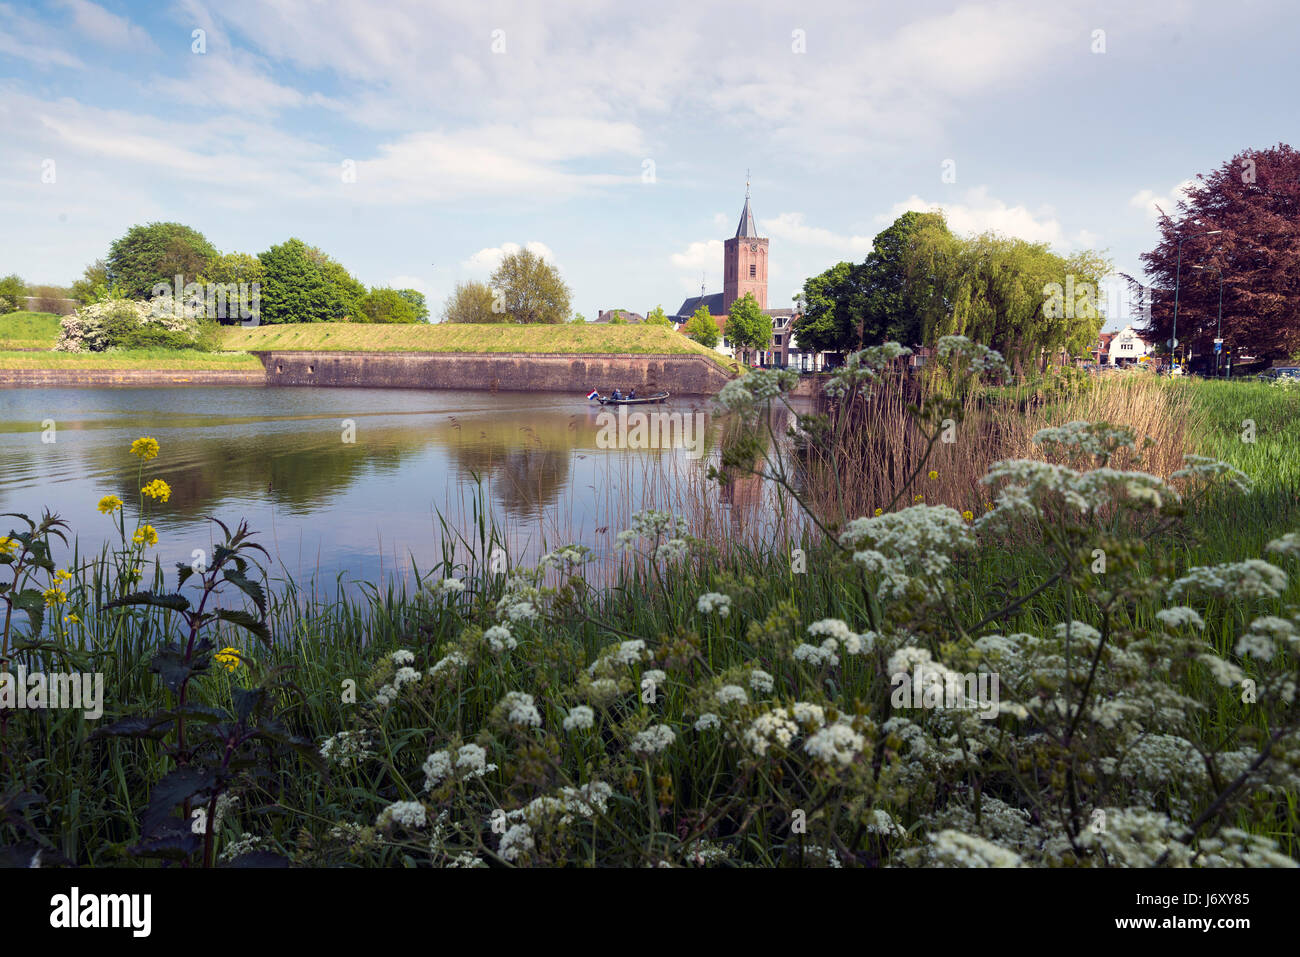 NAARDEN - NETHERLANDS - MAY 13, 2017: Naarden is an example of a star fort, complete with fortified walls and a Stock Photo